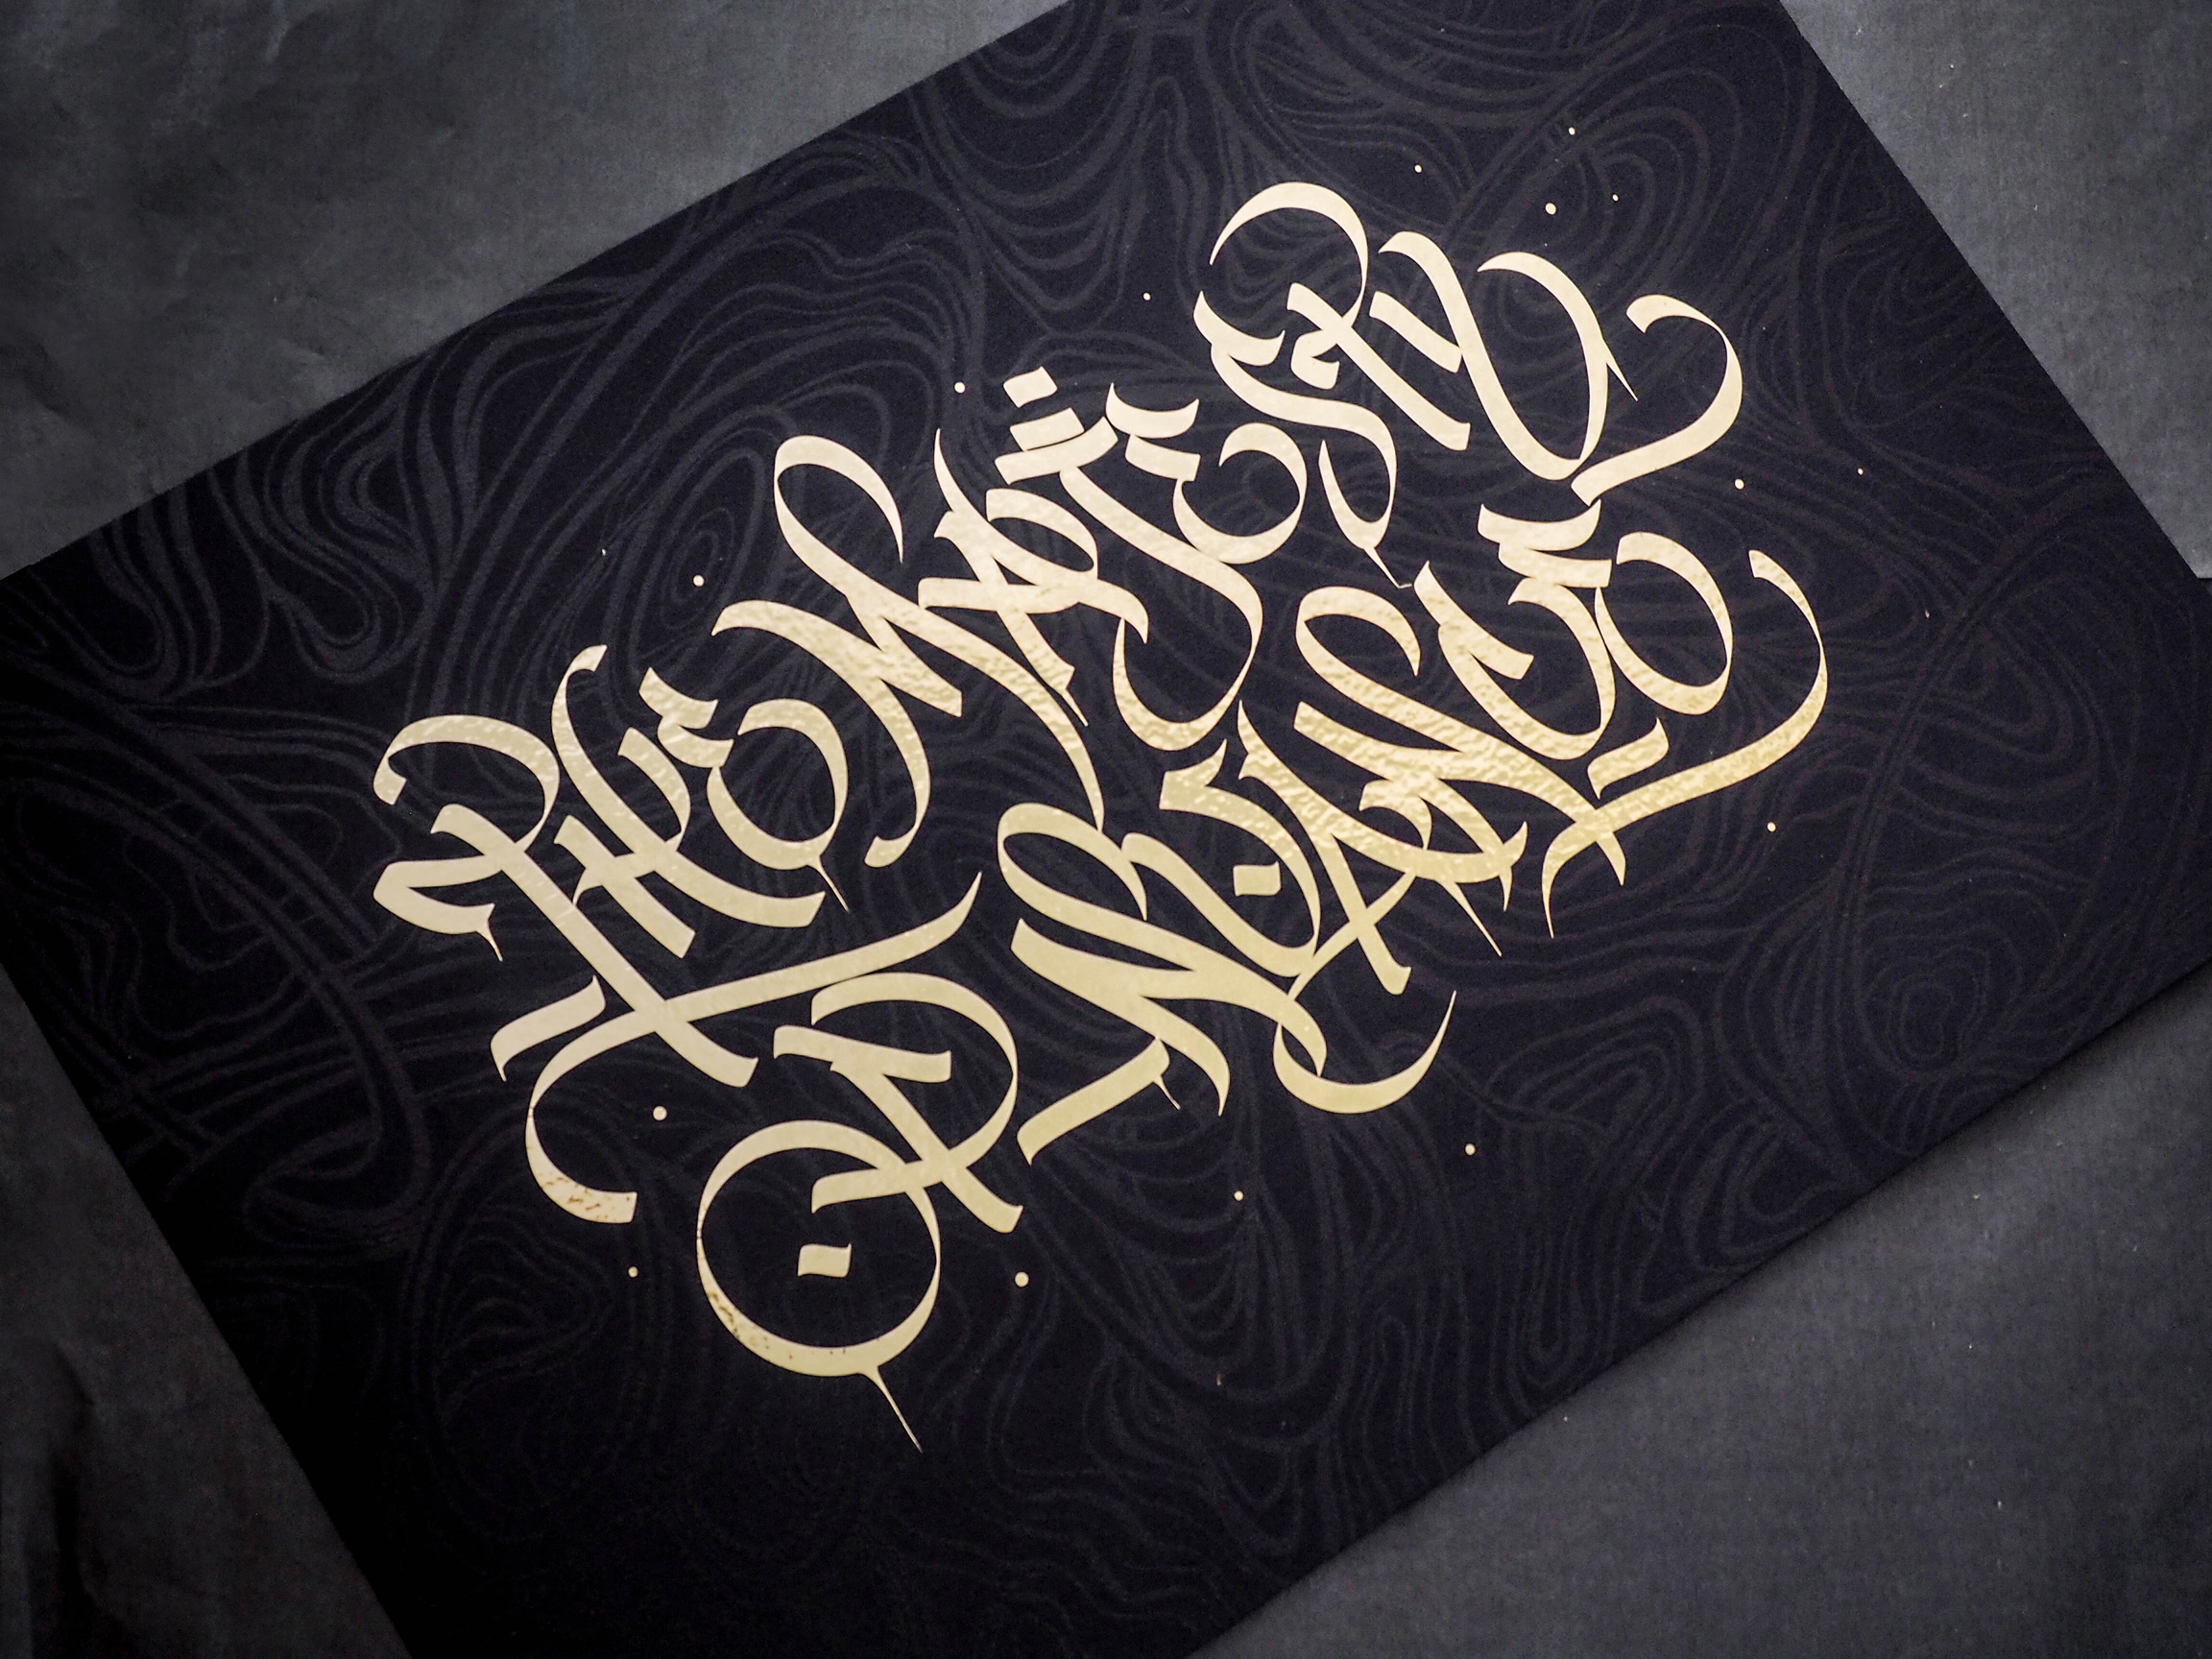 Street style calligraphy by Cheeky Observer